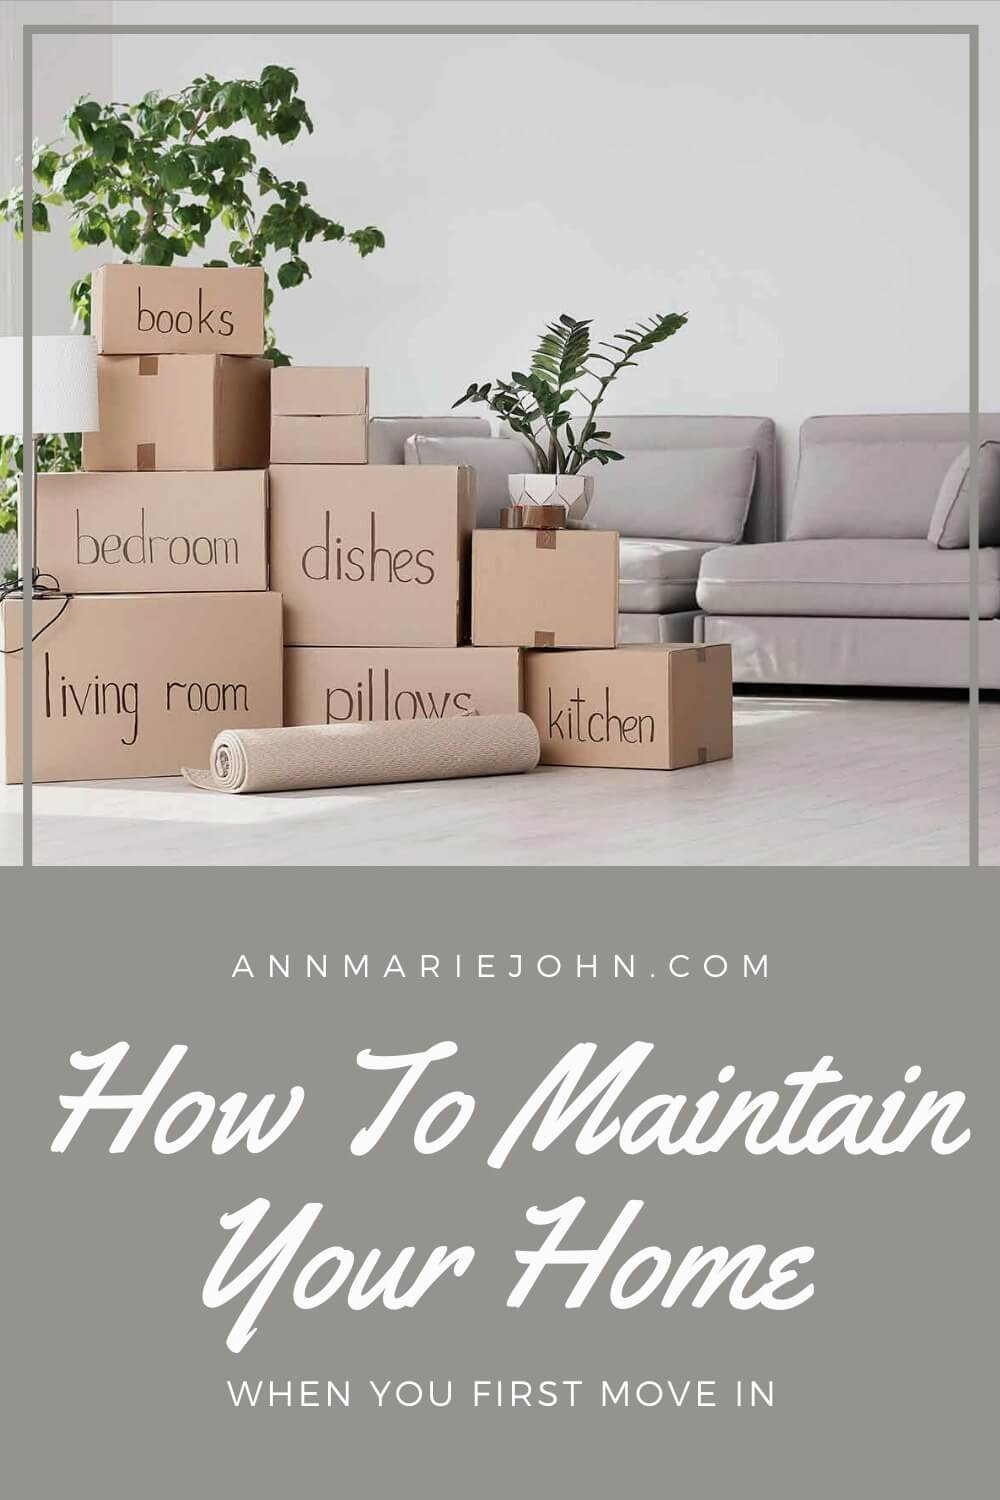 How to Maintain Your Home When You First Move In